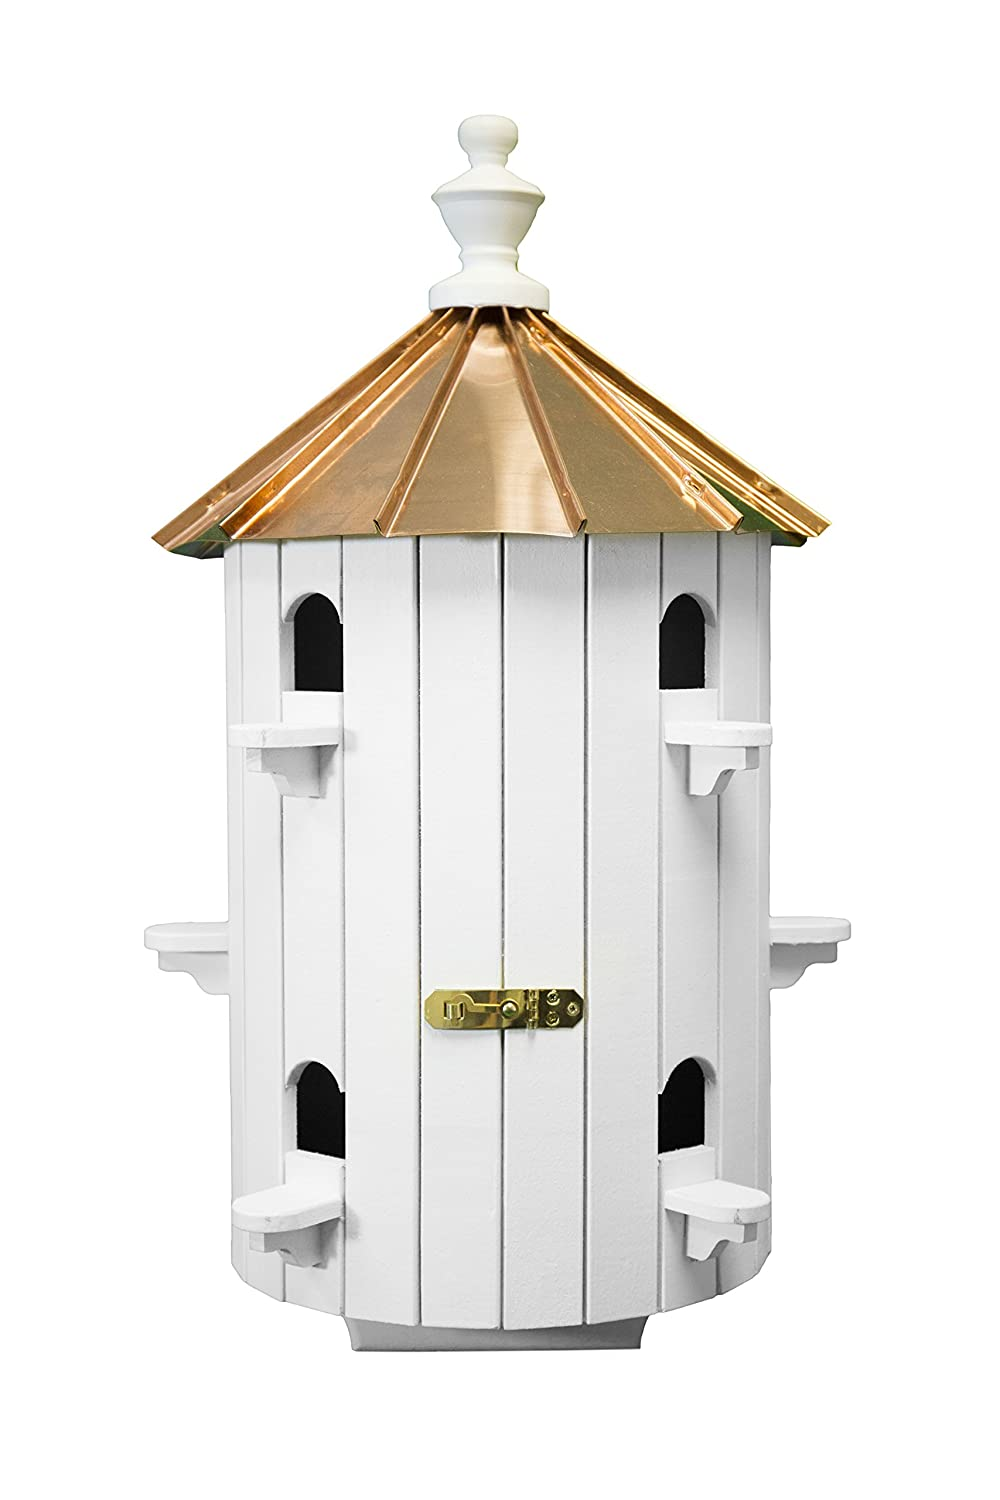 Amish Purple Martin birdhouse is very beautifully buid This birdhouse is designed for attracting purple martins. You can easily attract many purple martin birds to your yard using this birdhouse which will increase the beauty of you garden and you will have sweet littel martin babies this season you will definitely love these martin birdhouse. This birdhouse is a bit expensive but on the other hand this birdhouse can be home to 10 different martin familes which makes it very cool